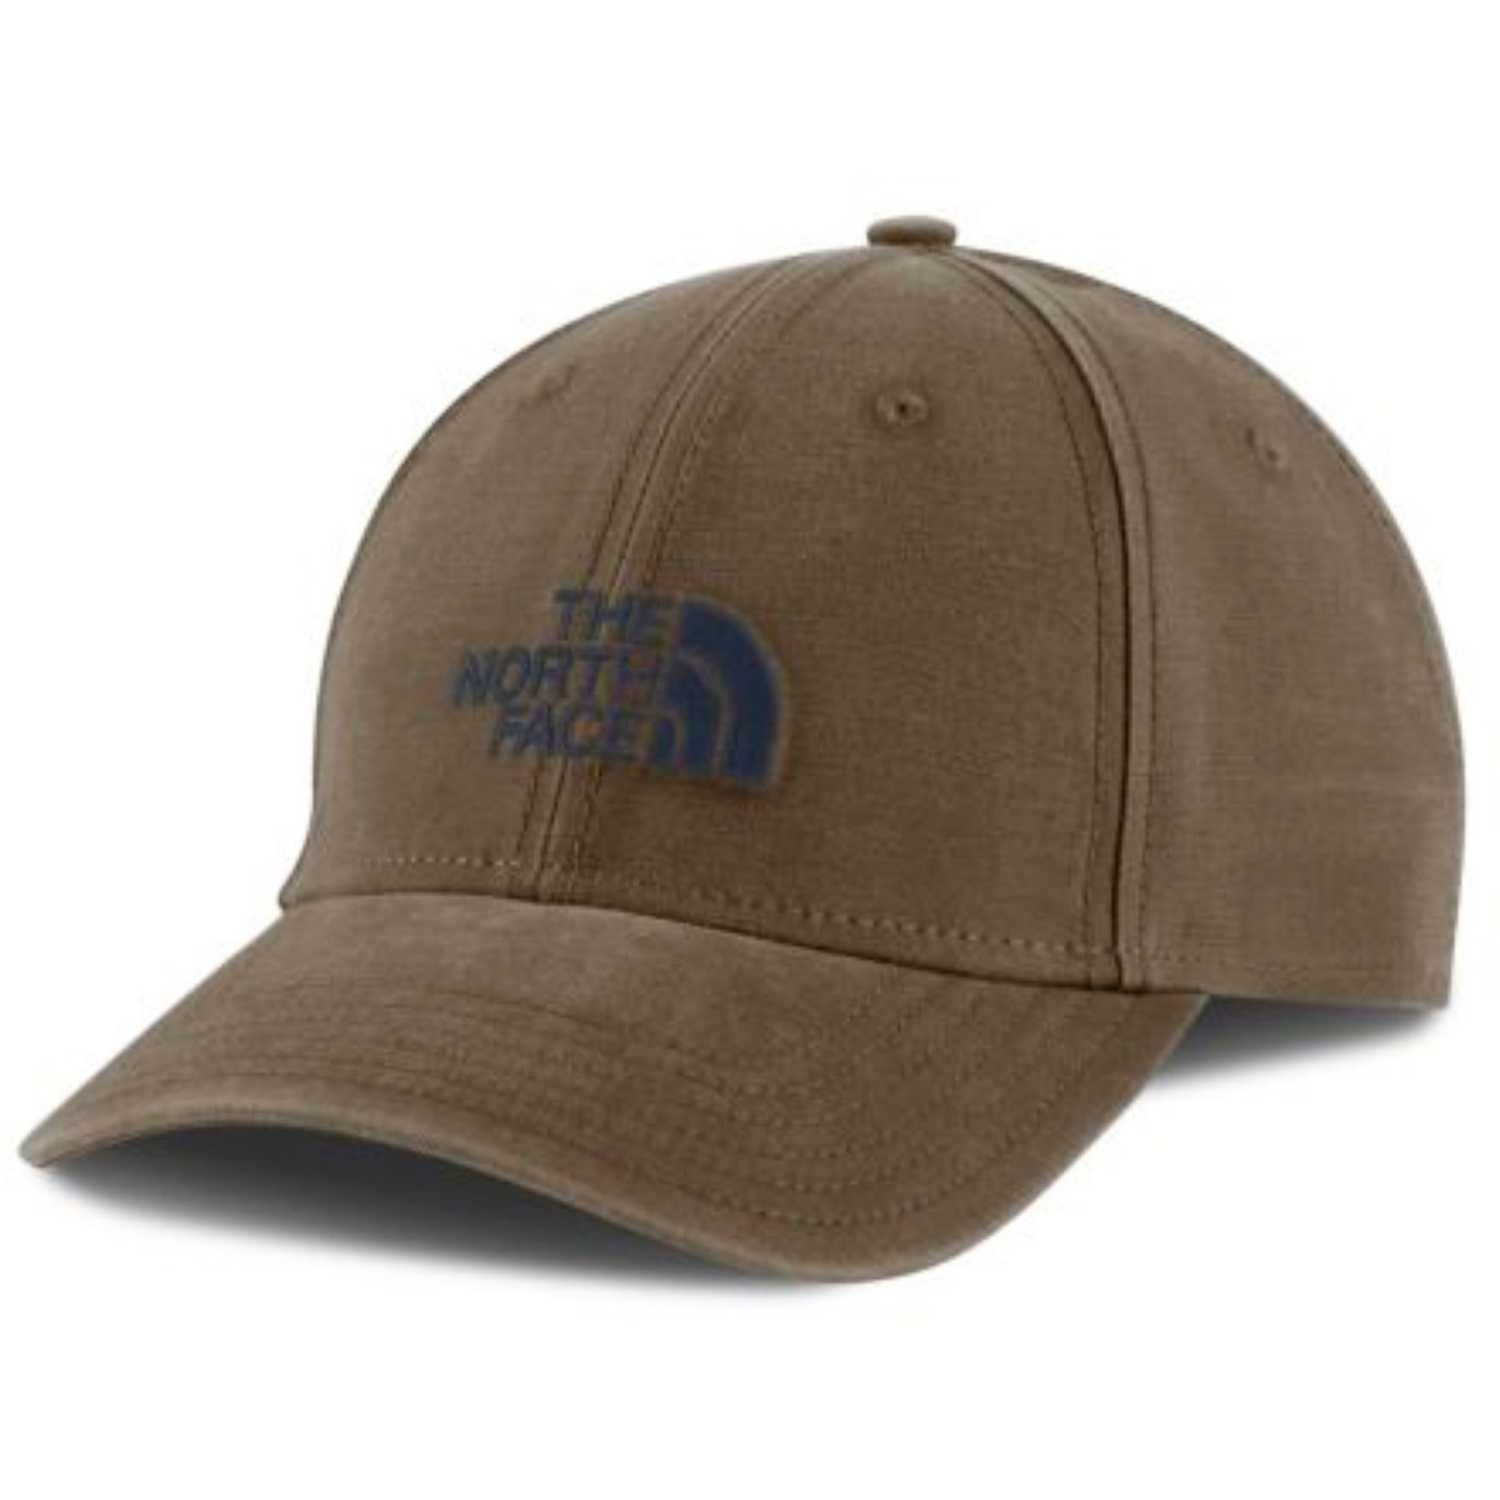 The North Face 66 classic hat Marron Gorros de Baseball